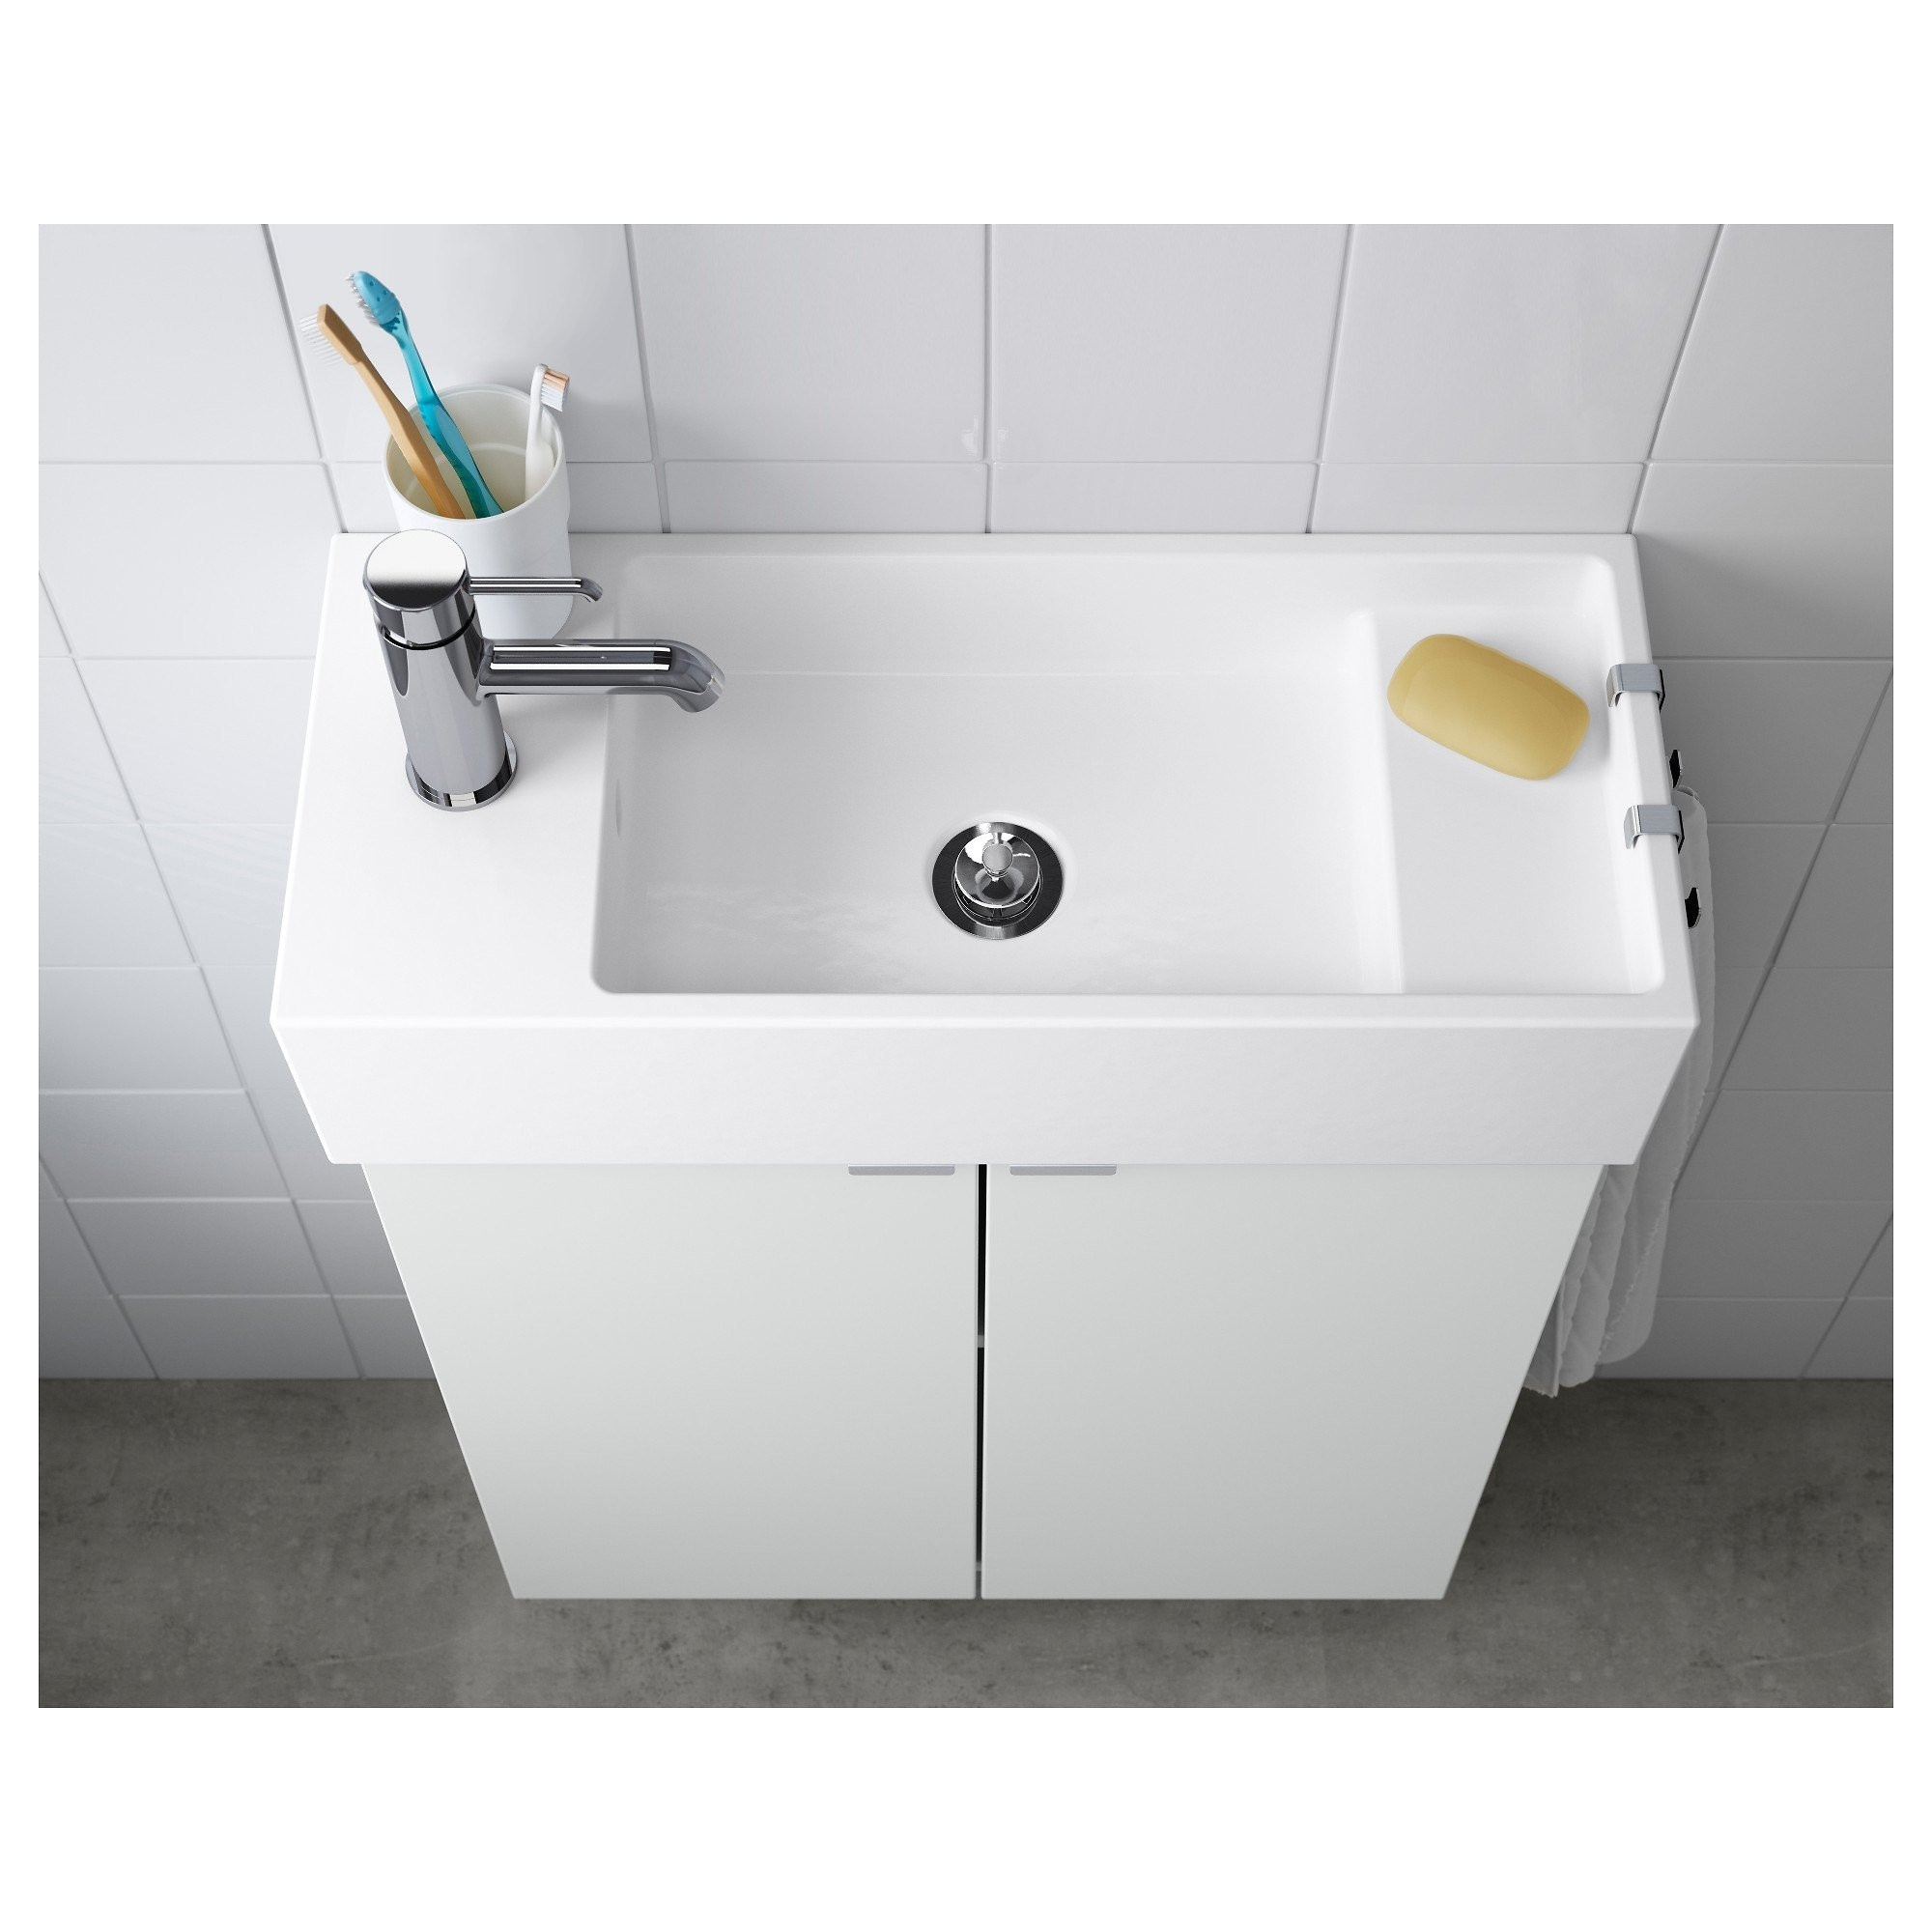 6 foot bathtub best bathroom sinks and cabinets ideas pe s5h sink ikea small i 0d